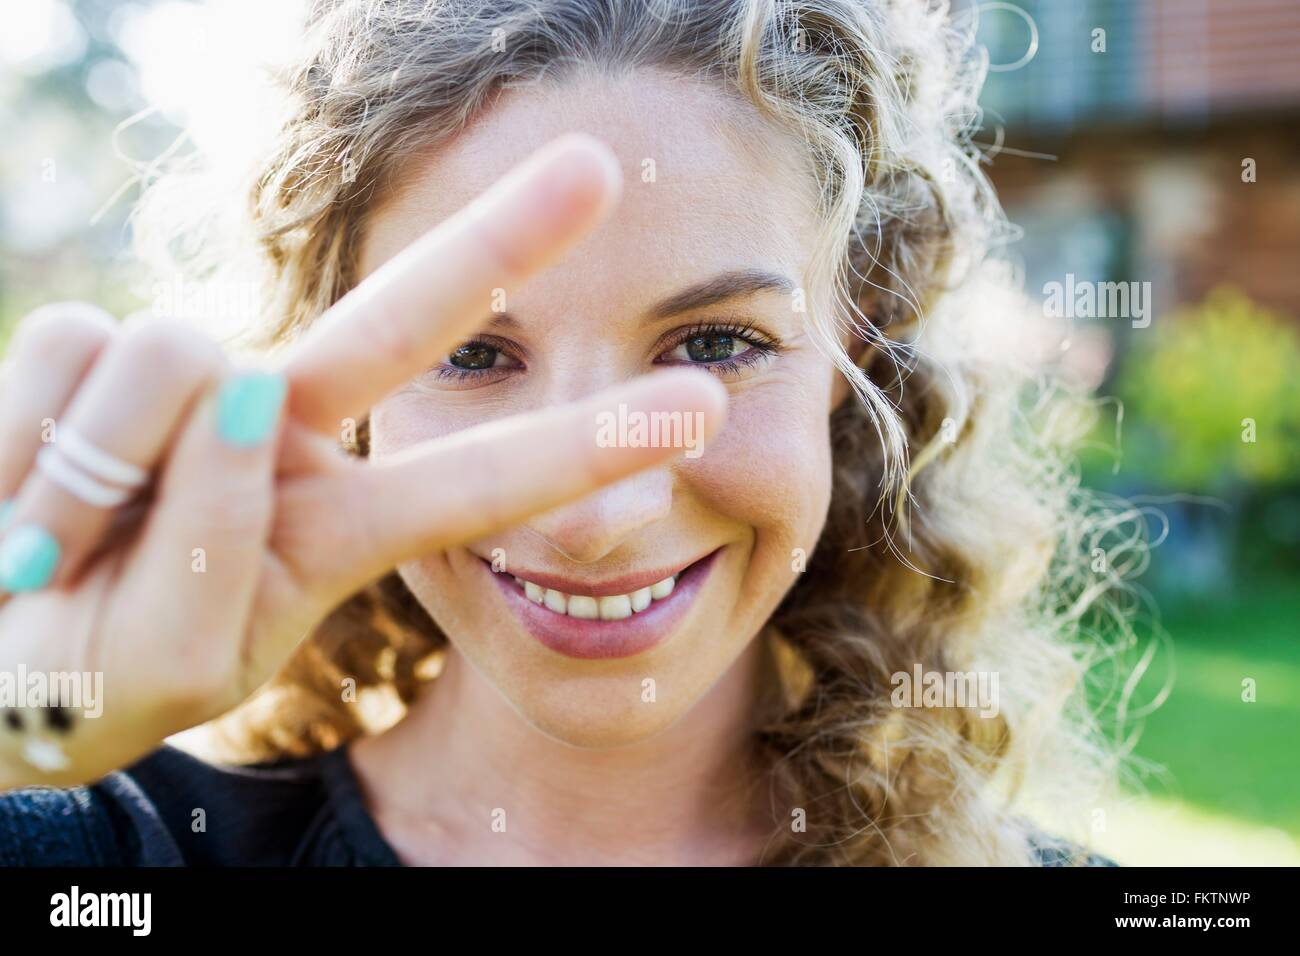 Young woman making peace sign with hand - Stock Image